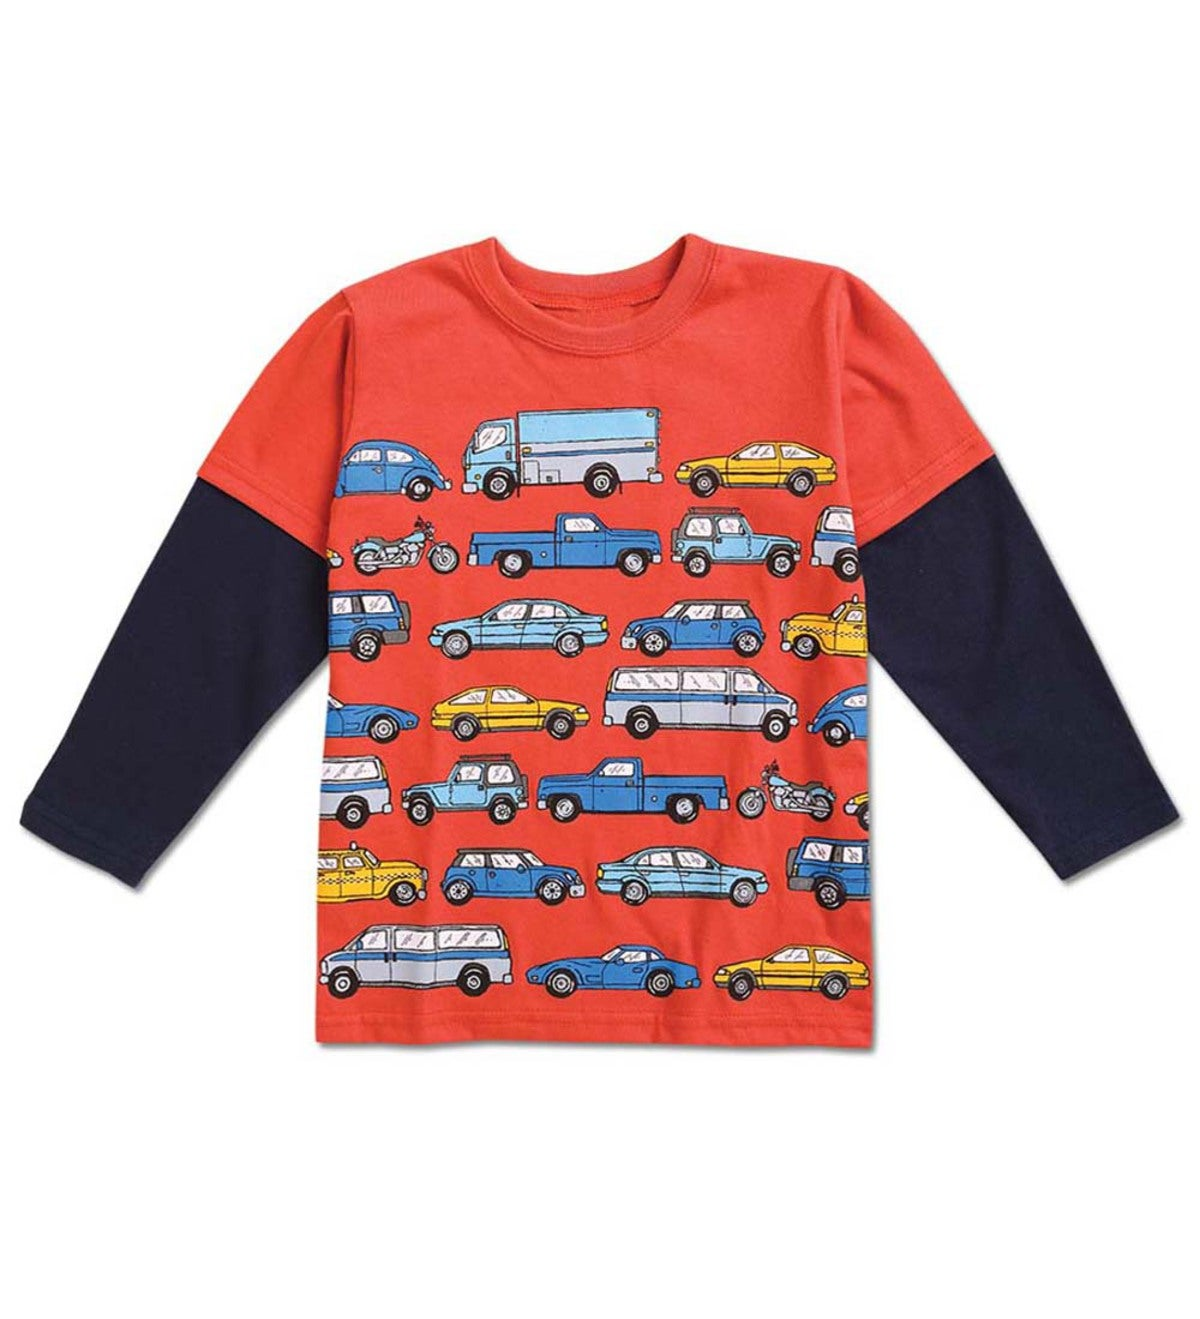 Vehicles Double Sleeve Tee - Red - 10